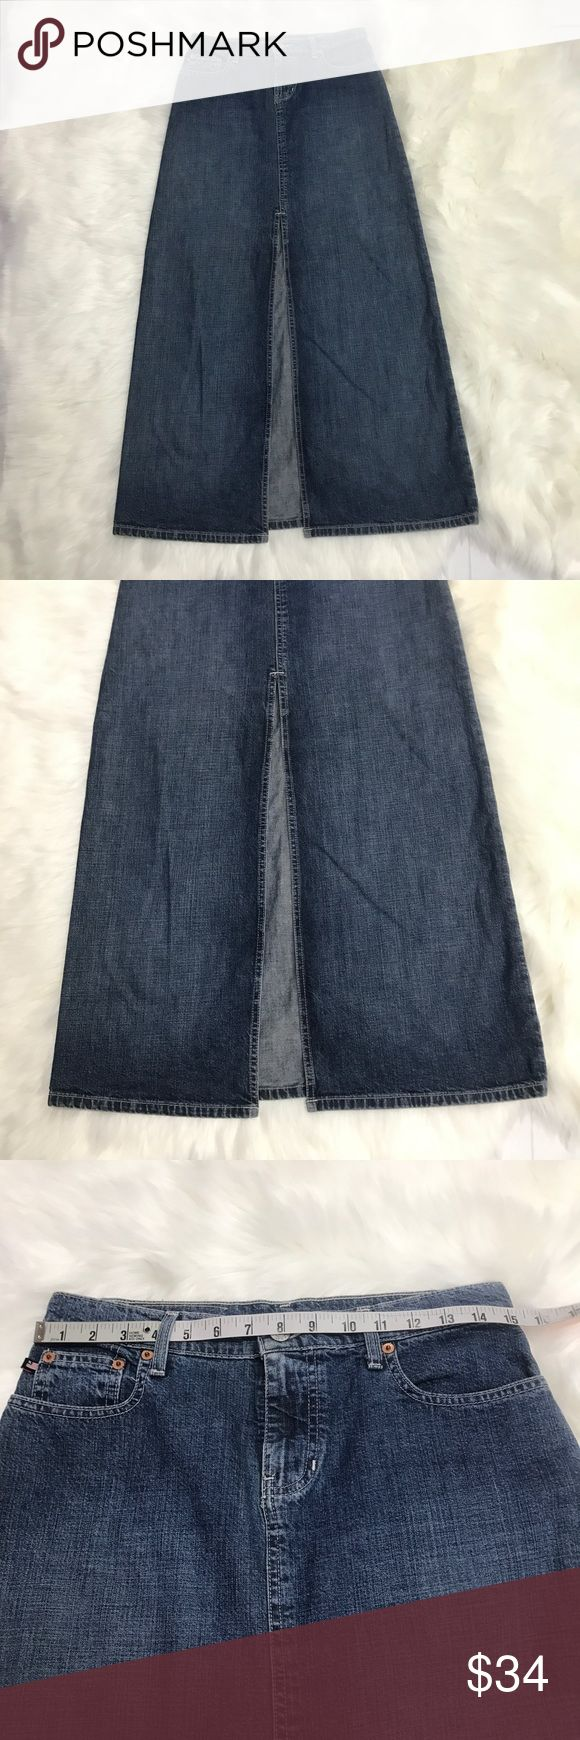 Polo Jeans Co. Ralph Lauren Denim Skirt Polo Jeans Company Ralph Lauren. Size 2, front slit, tea length denim skirt. 100% Cotton. This skirt is in excellent condition. Item #000100. Polo by Ralph Lauren Skirts Maxi